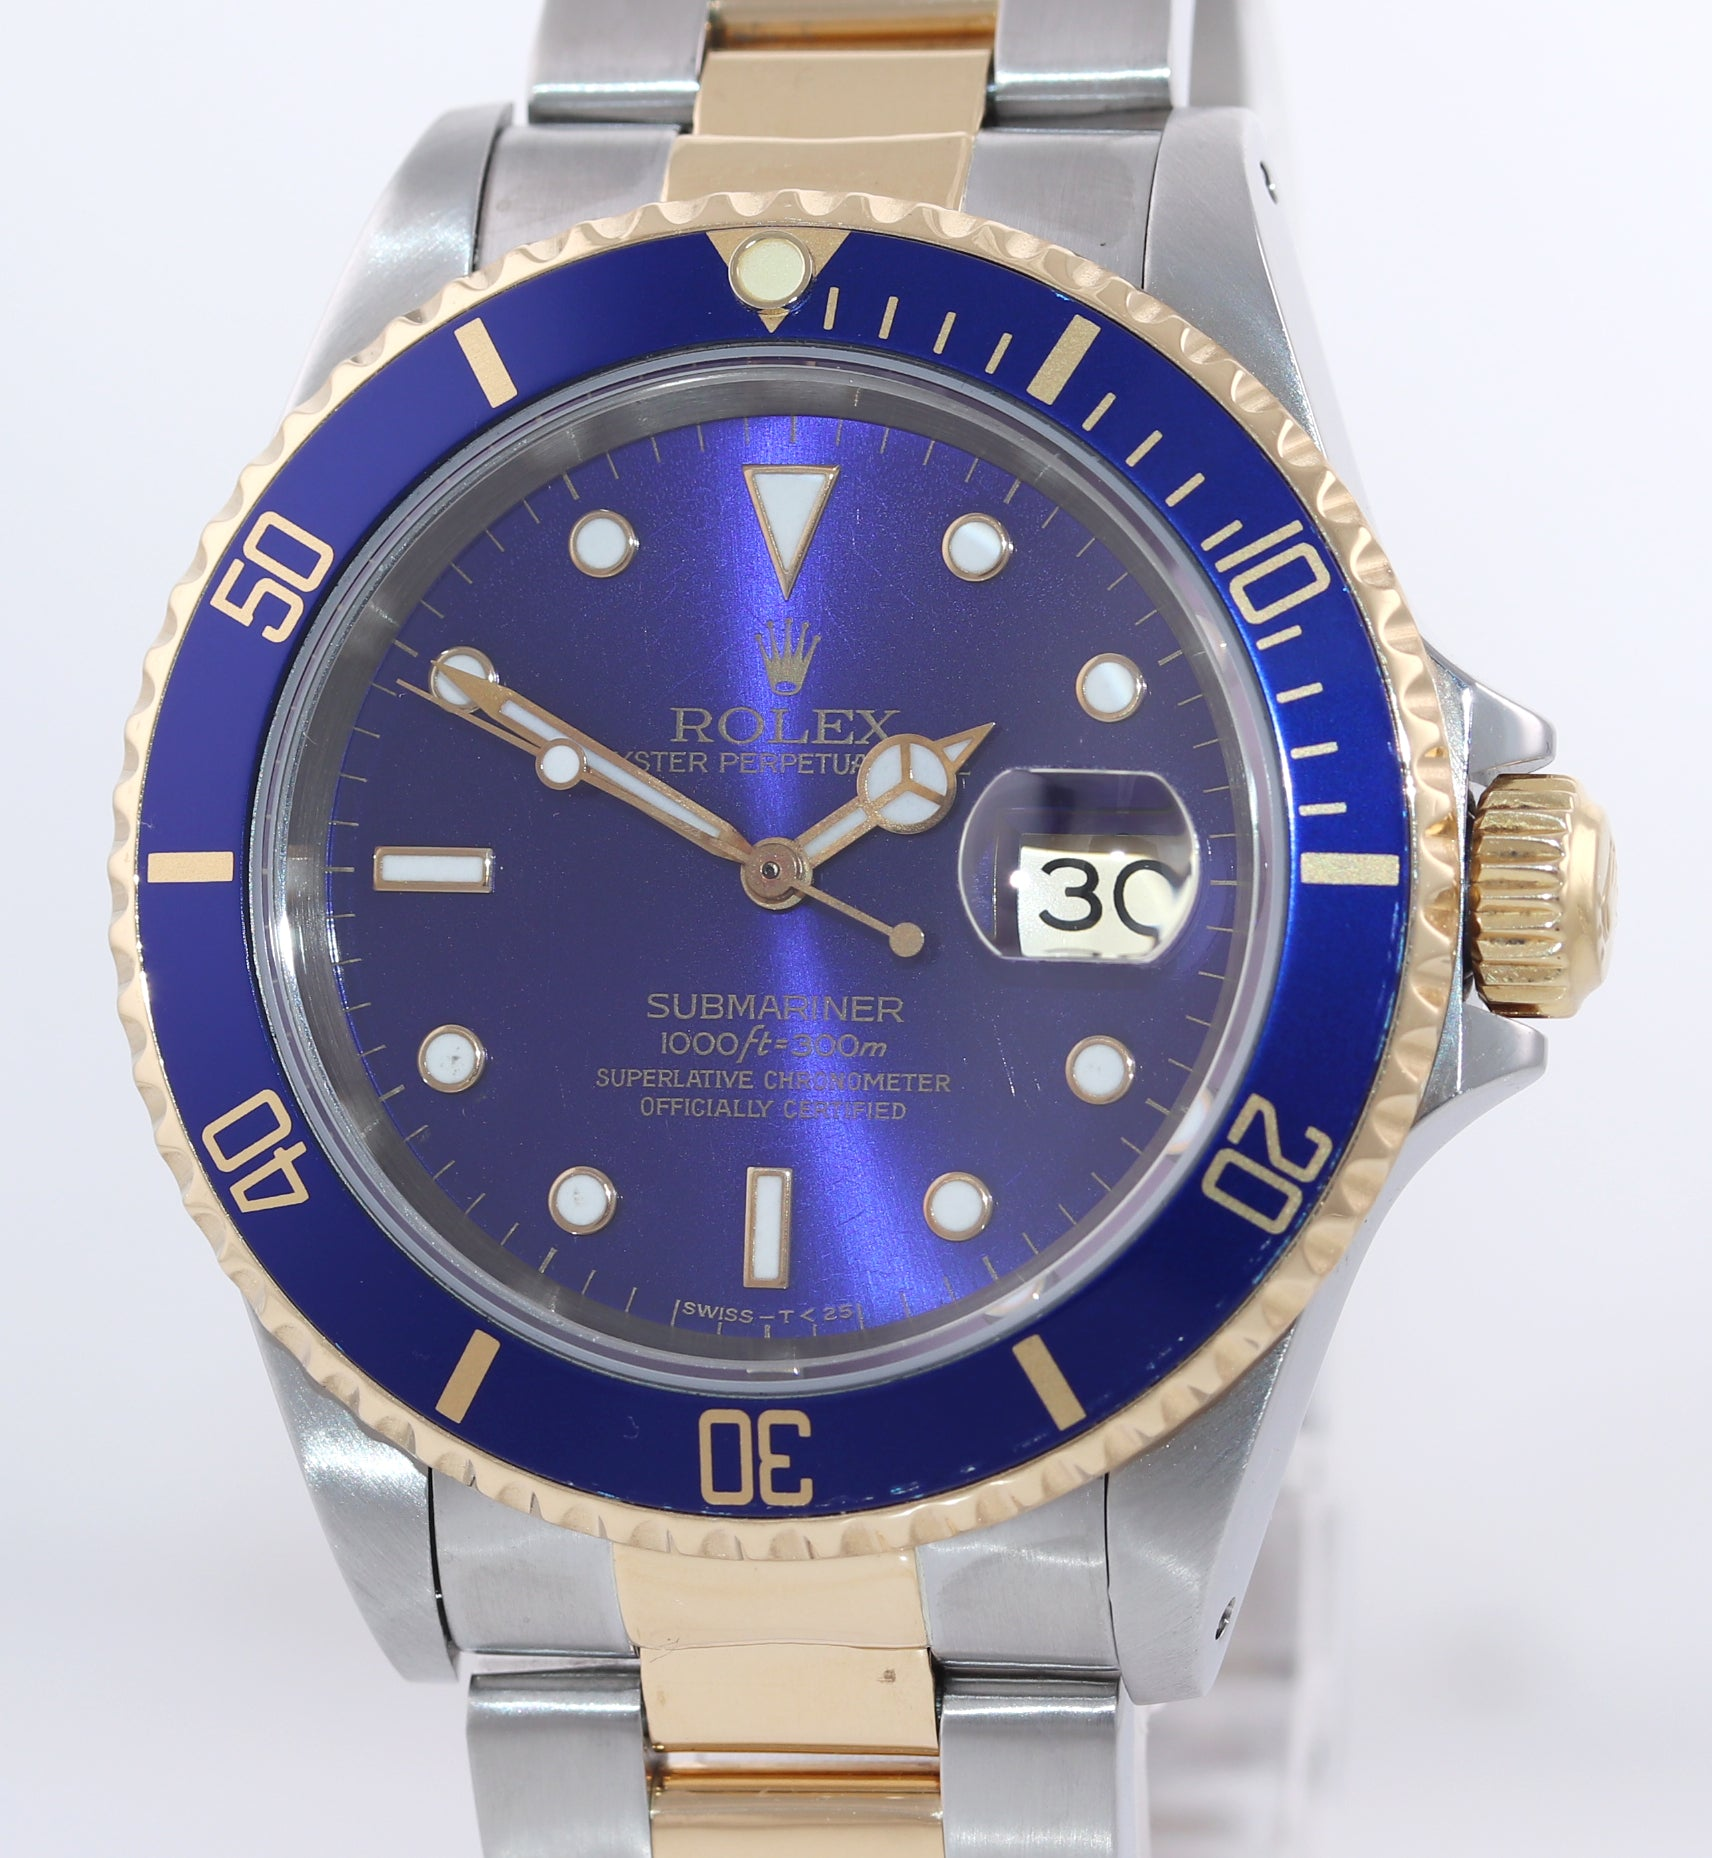 Rolex Submariner 16613 Two Tone 18k Yellow Gold Blue Sunburst Dial 40mm Watch